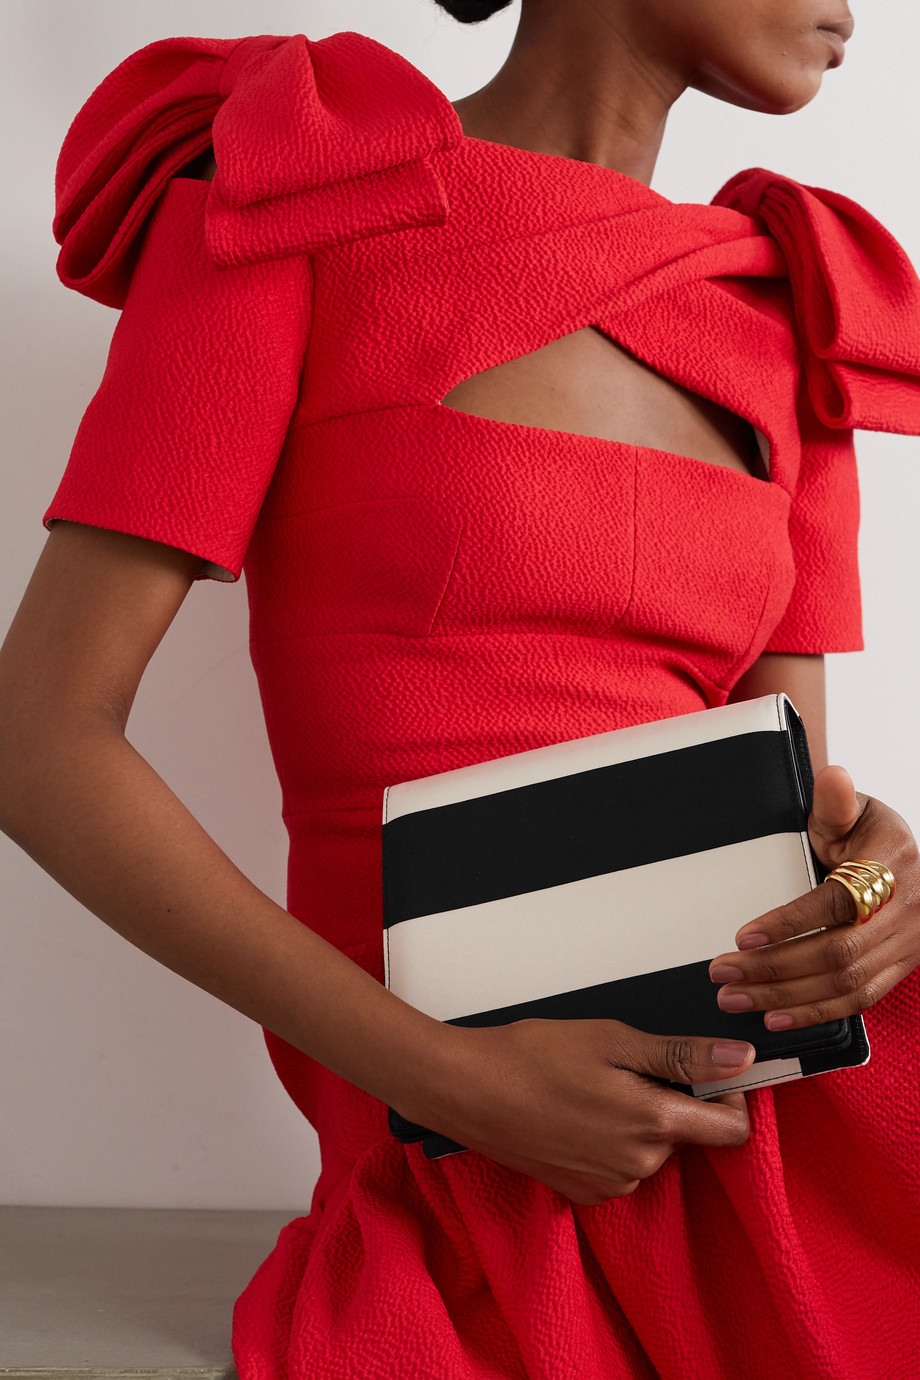 EMILIA WICKSTEAD Striped satin clutch